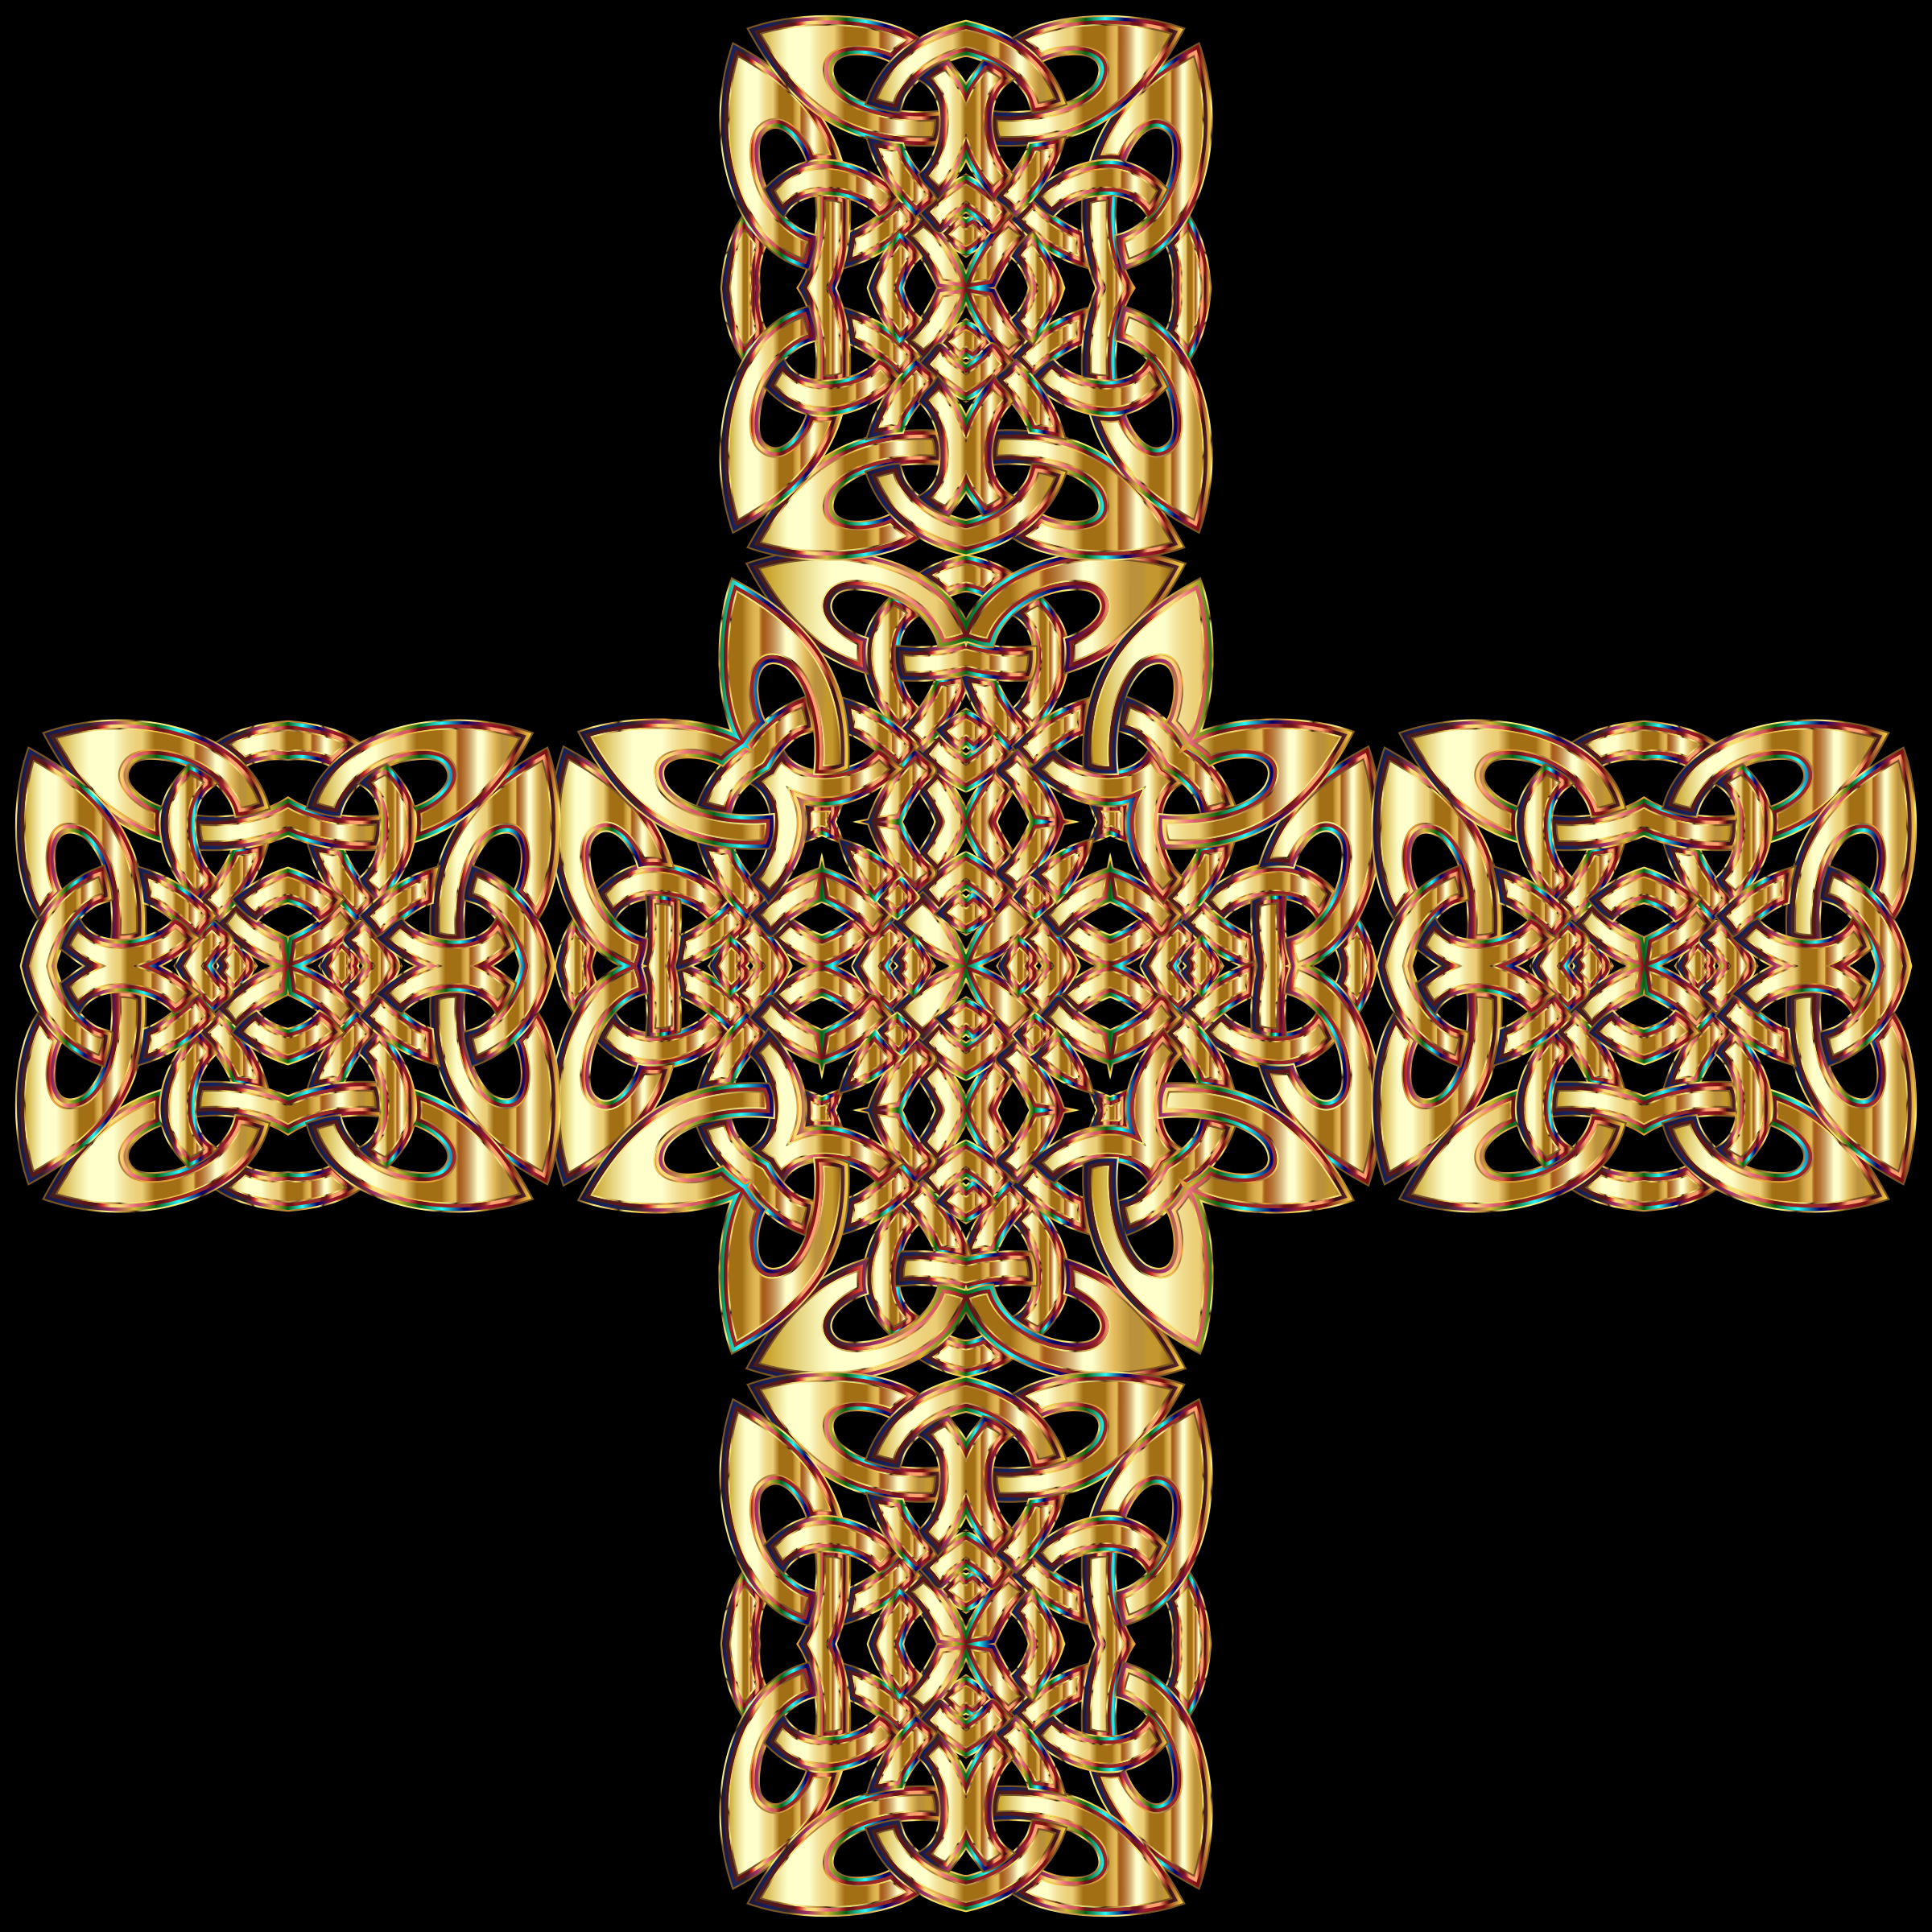 Golden Celtic Knot Cross 3 Variation 2 by GDJ